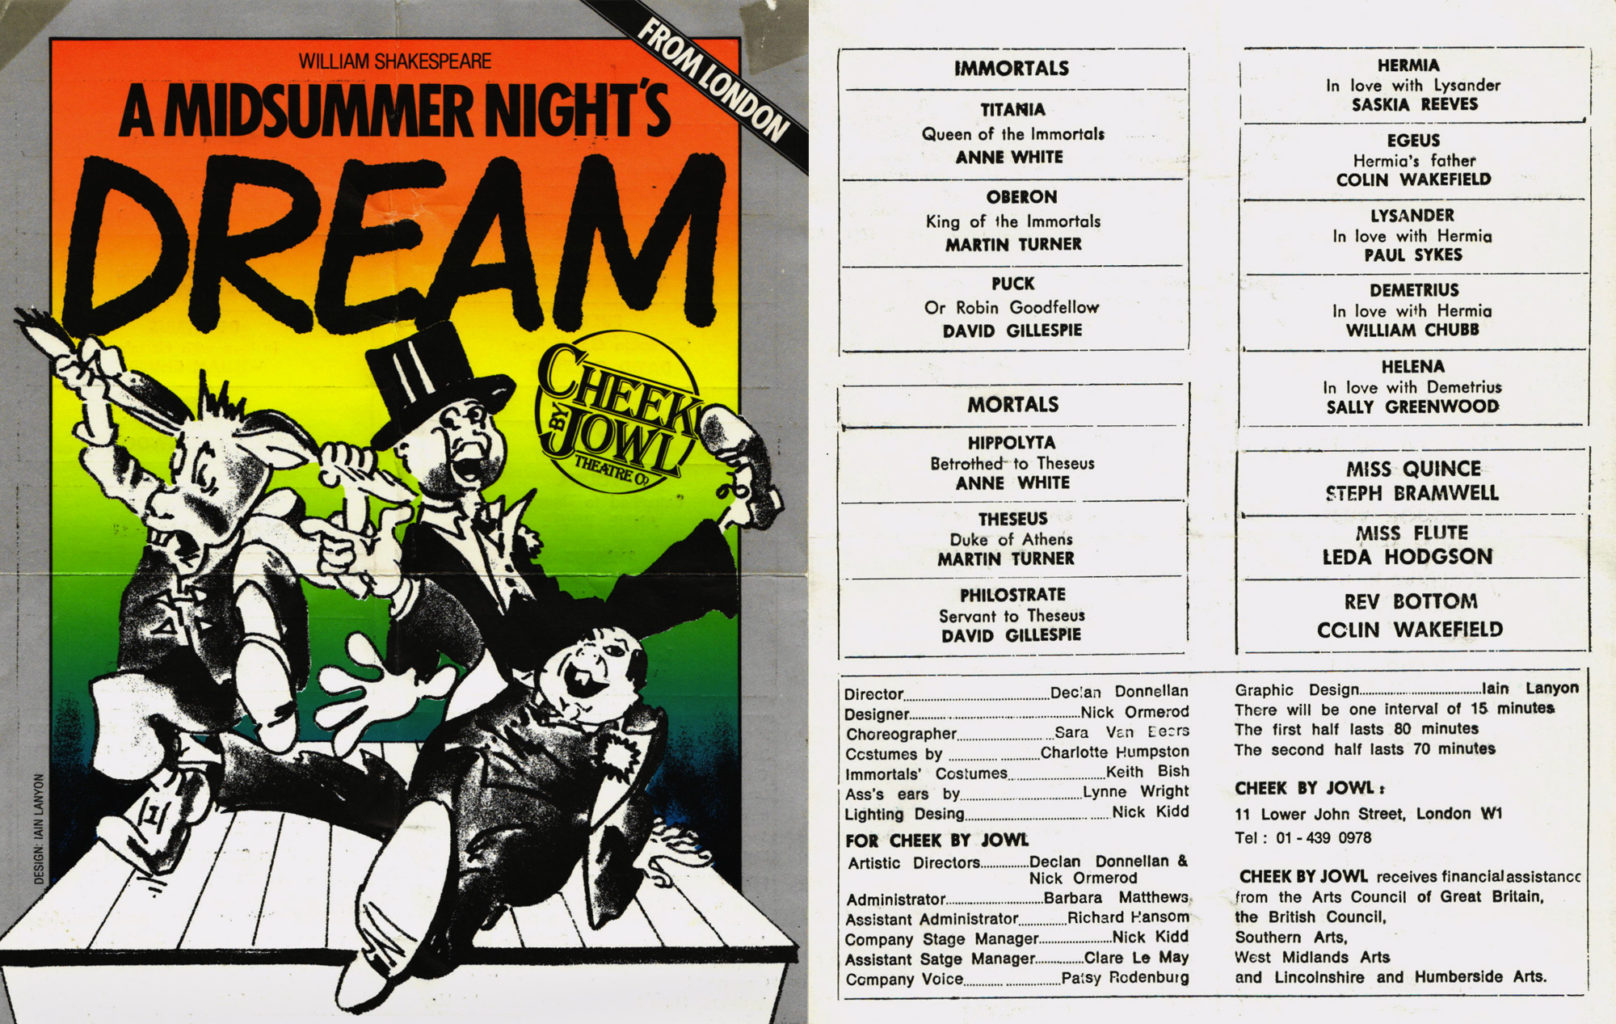 Flyer for A Midsummer Night's Dream in 1985